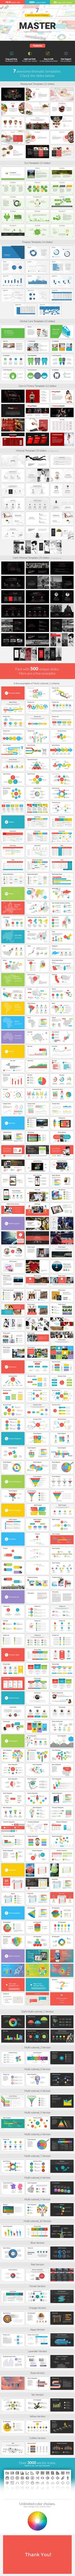 Master PowerPoint Template Professional Pack - PowerPoint Templates Presentation Templates